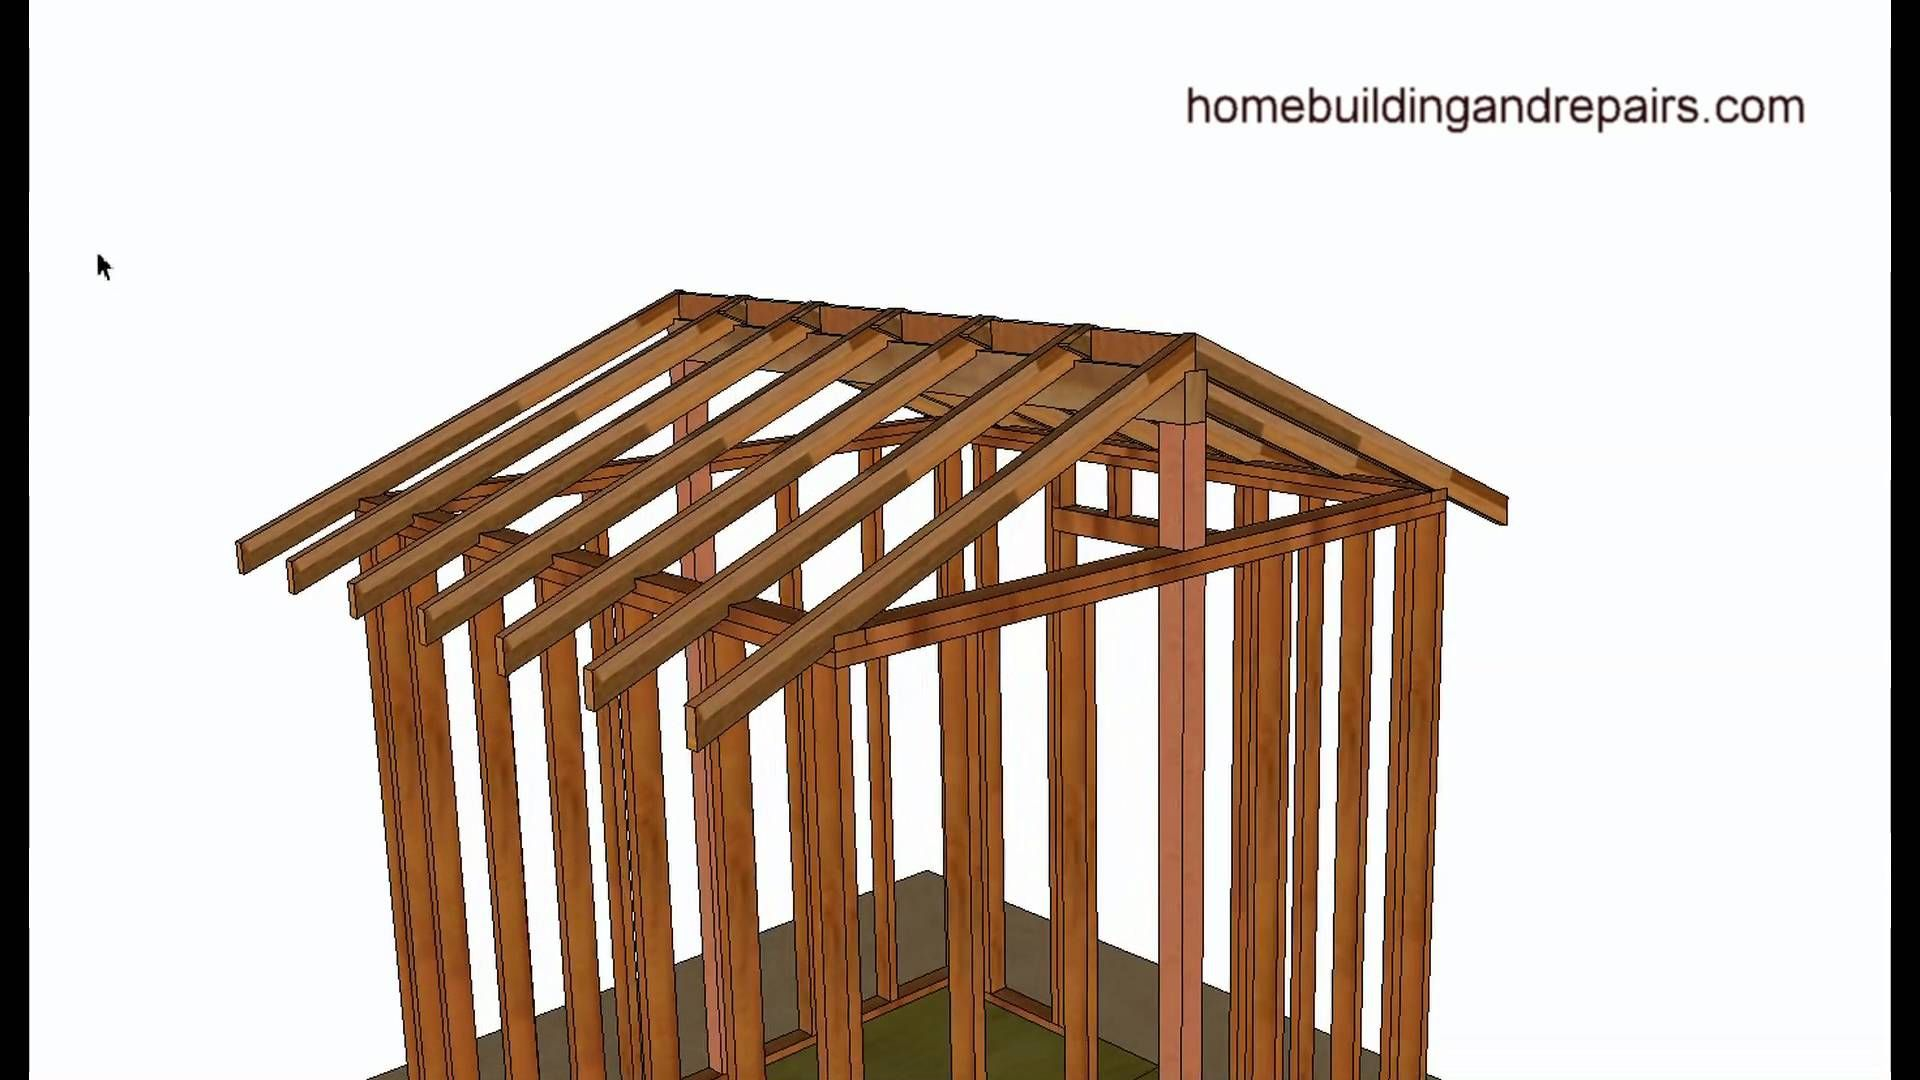 Vaulted or cathedral roof framing basics home building